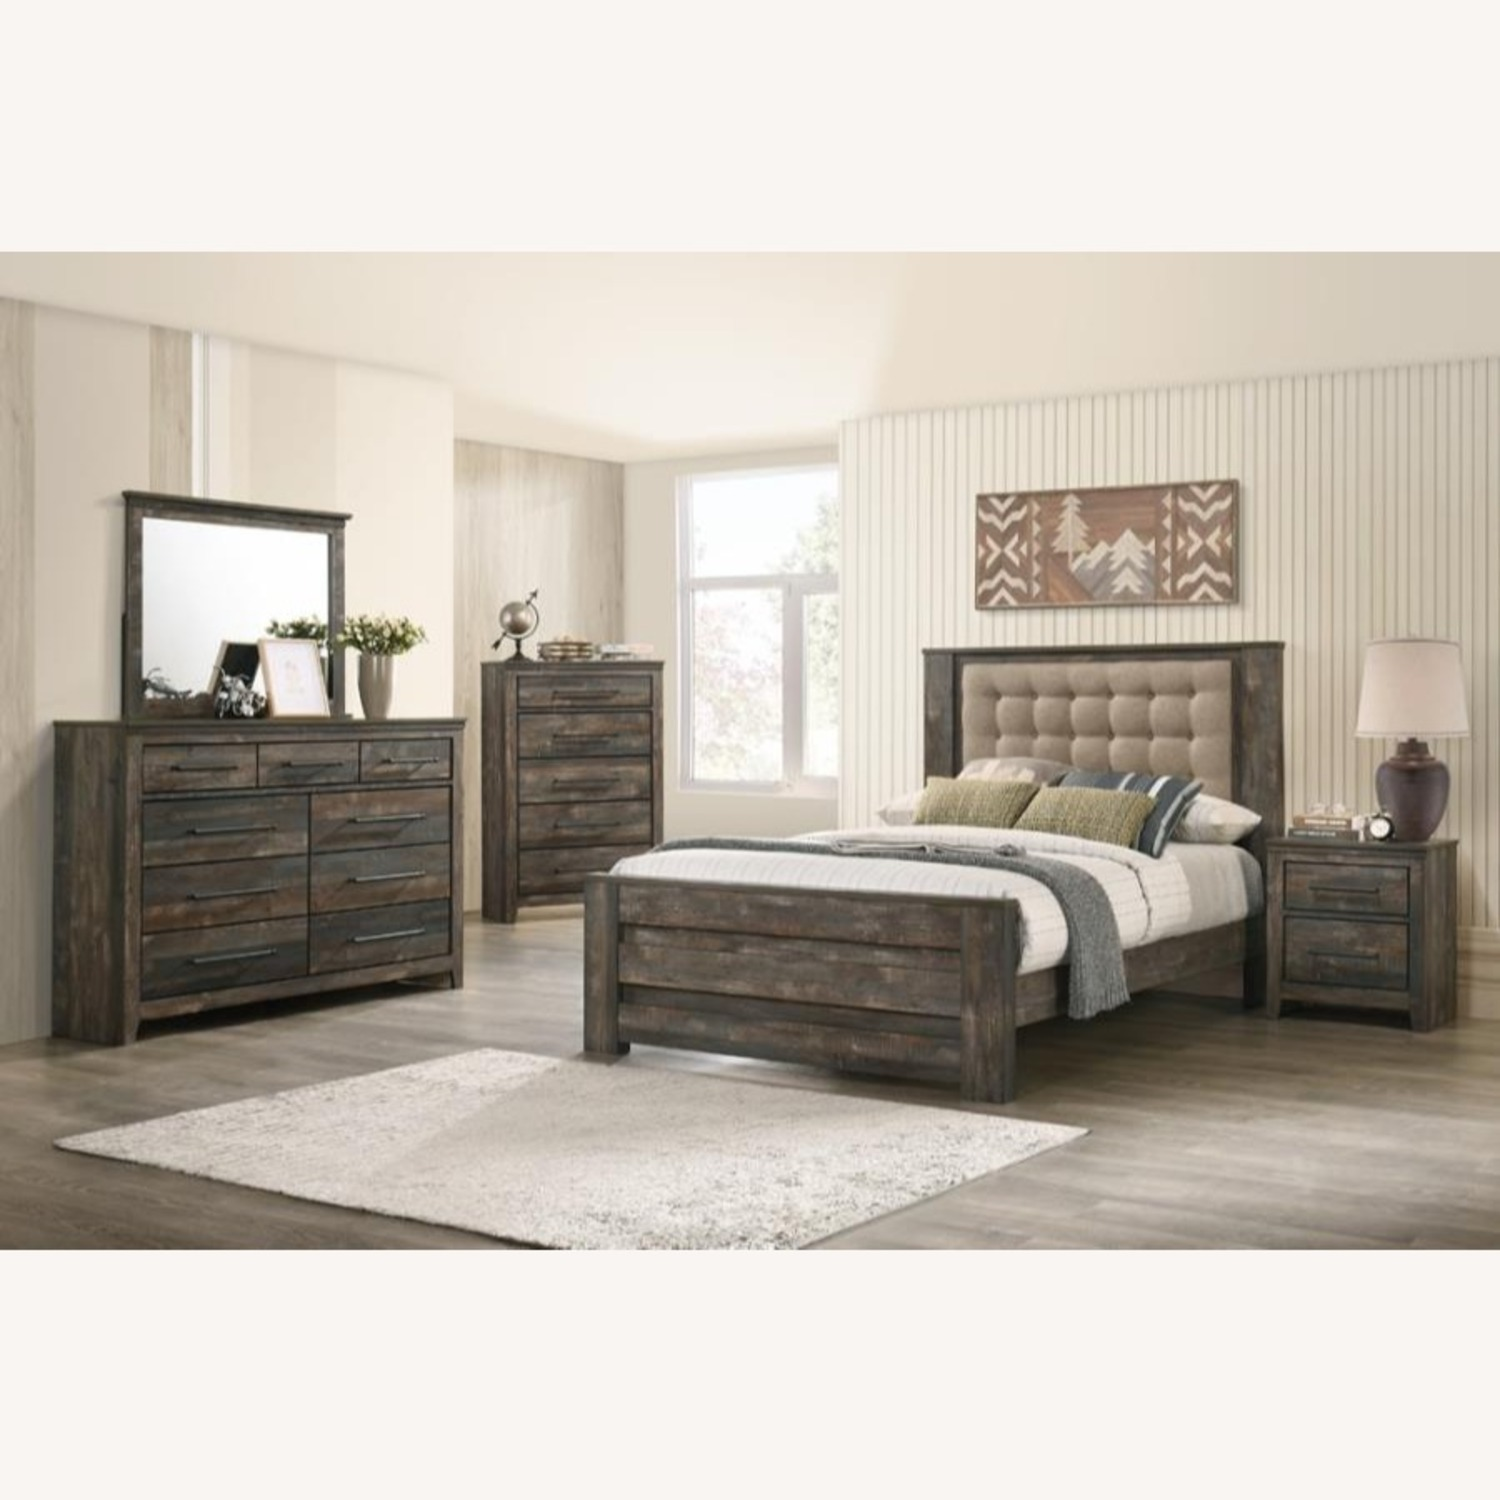 Rustic Style Queen Bed In Weathered Dark Brown - image-3